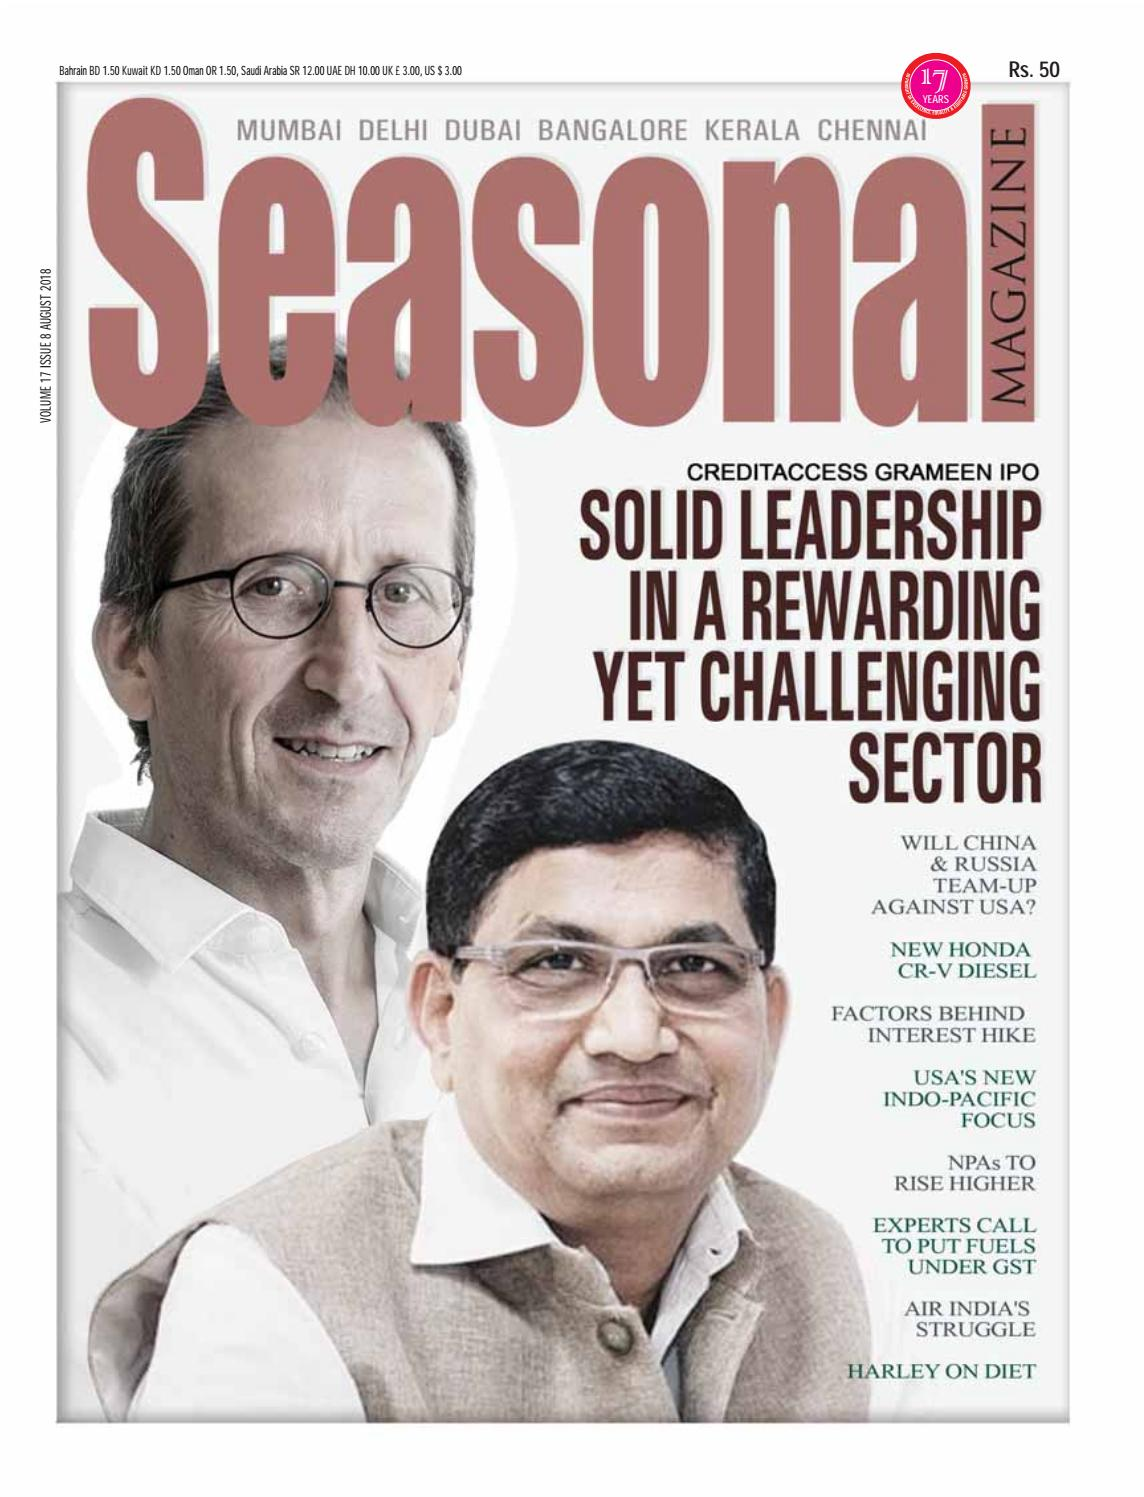 Seasonal Magazine - August 2018 Issue - CreditAccess Grameen IPO Cover Story